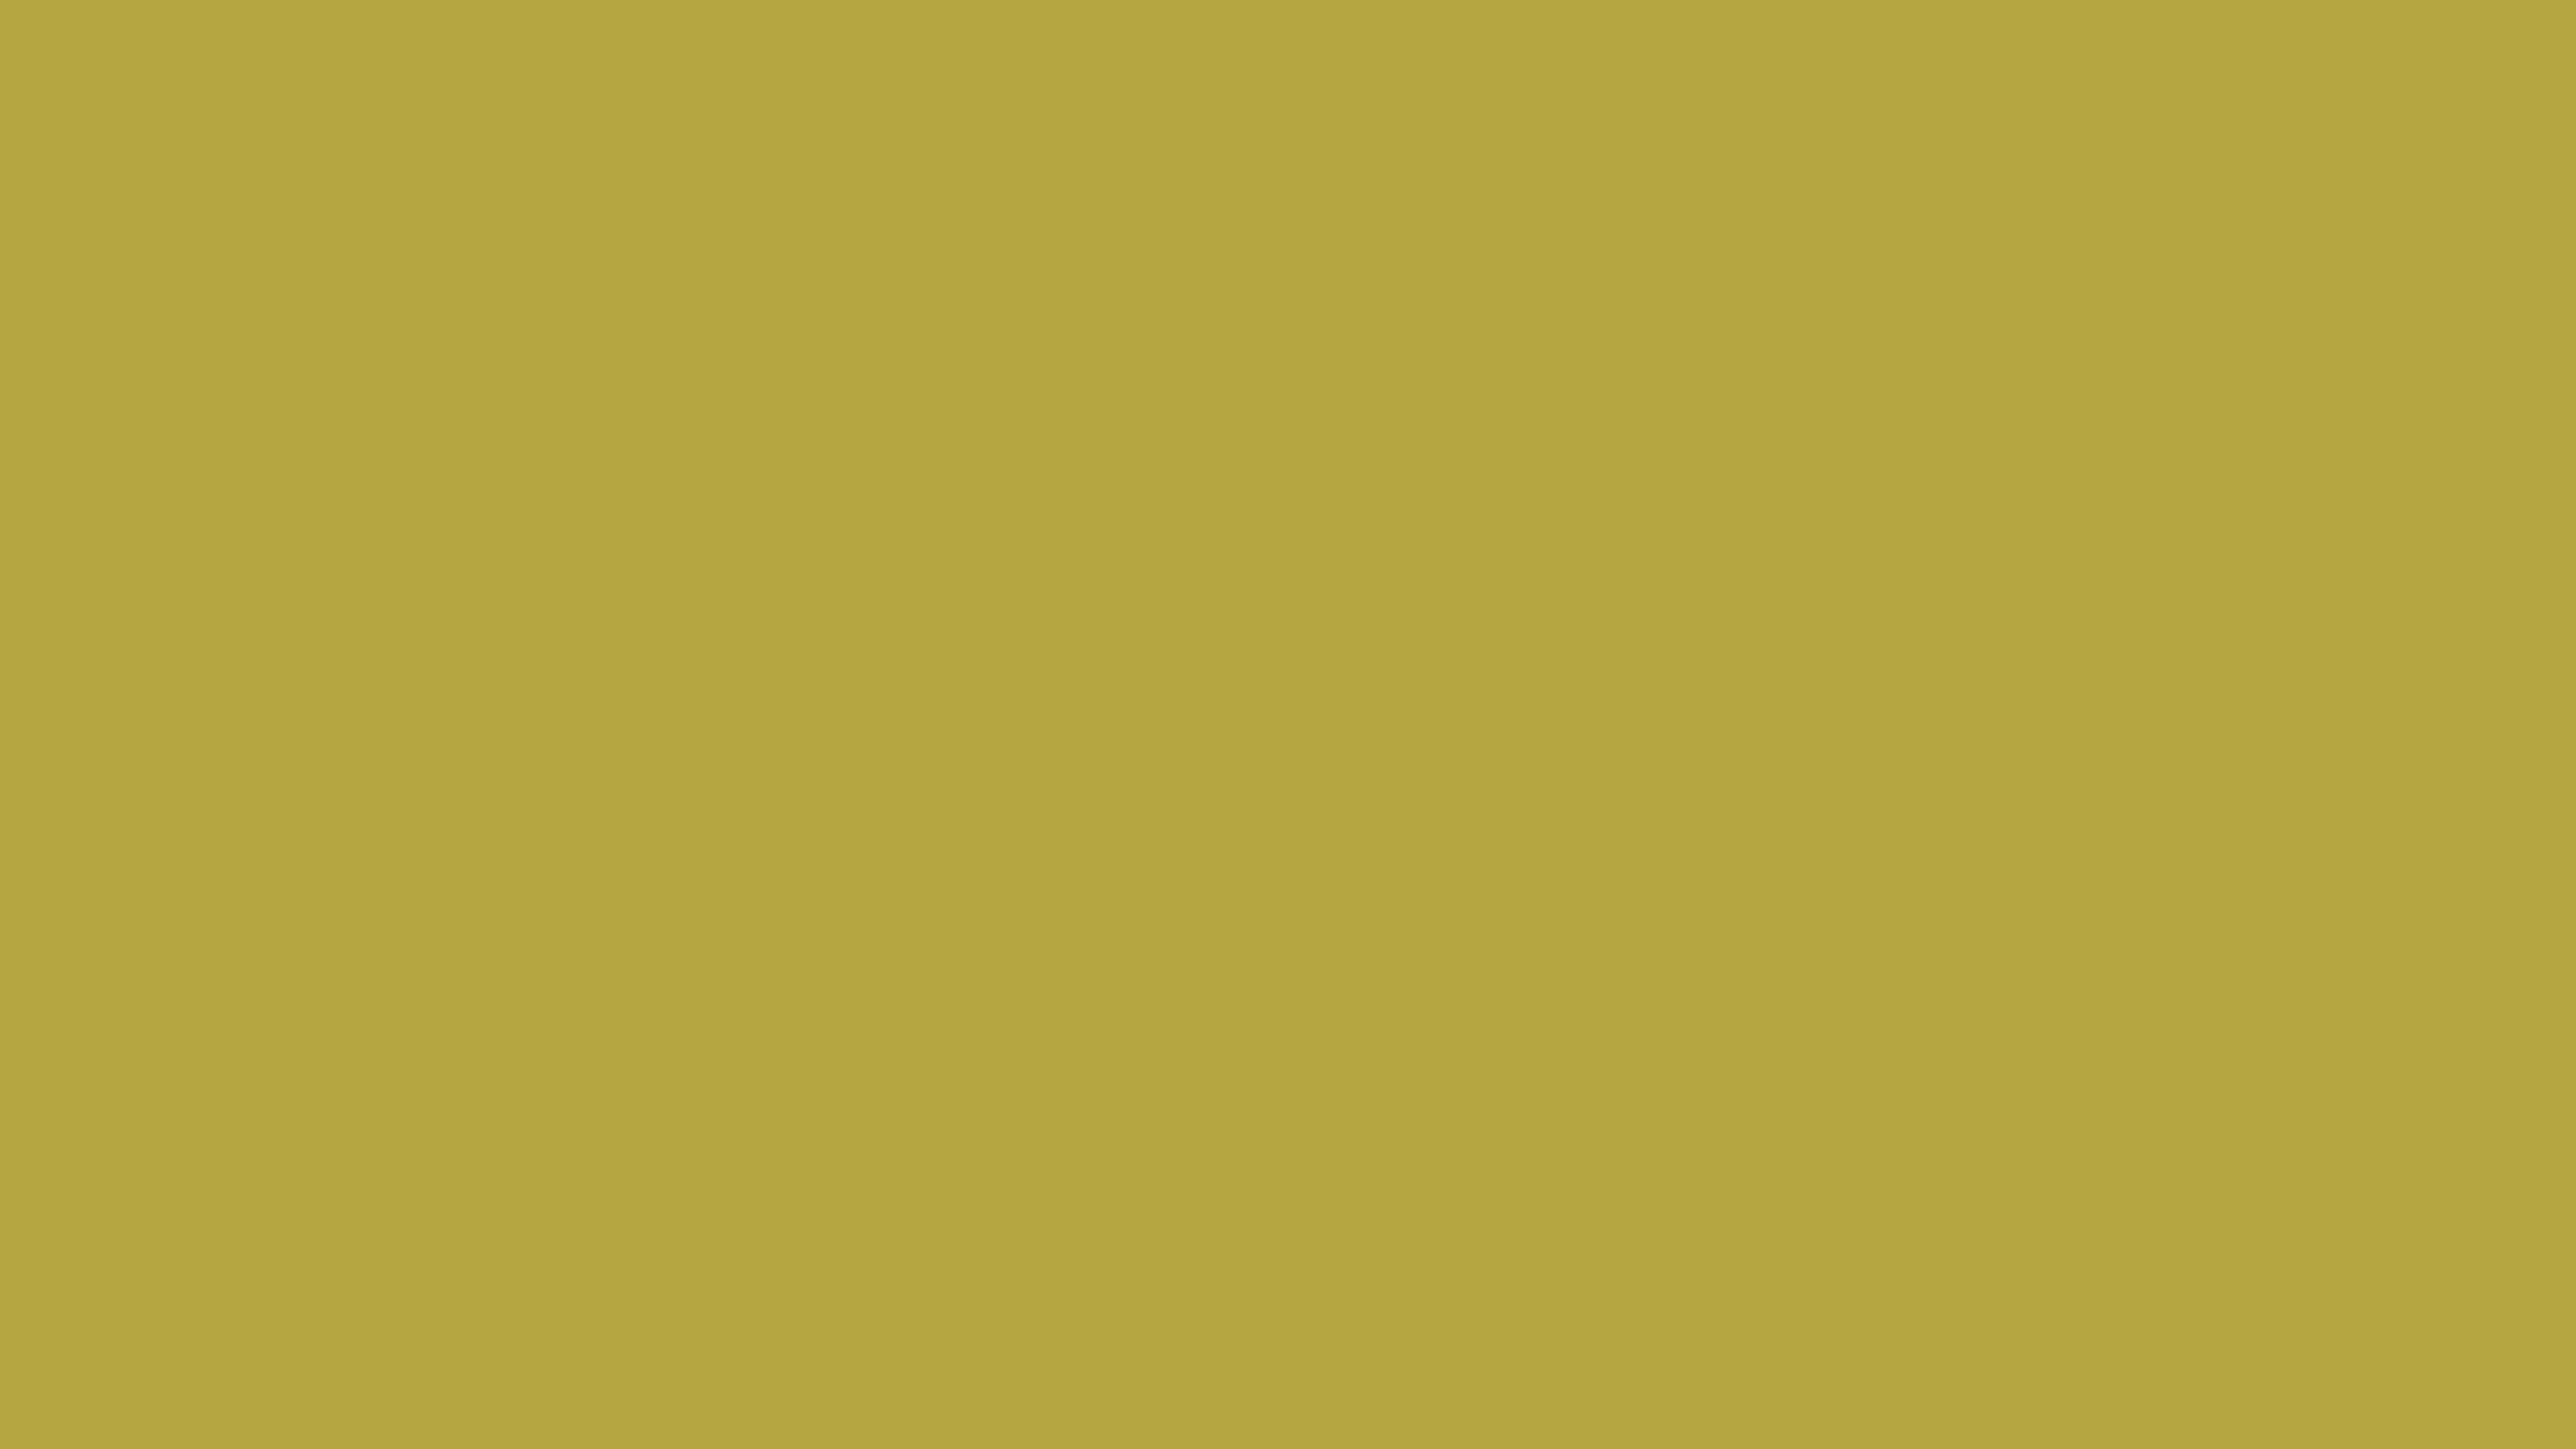 3840x2160 Brass Solid Color Background